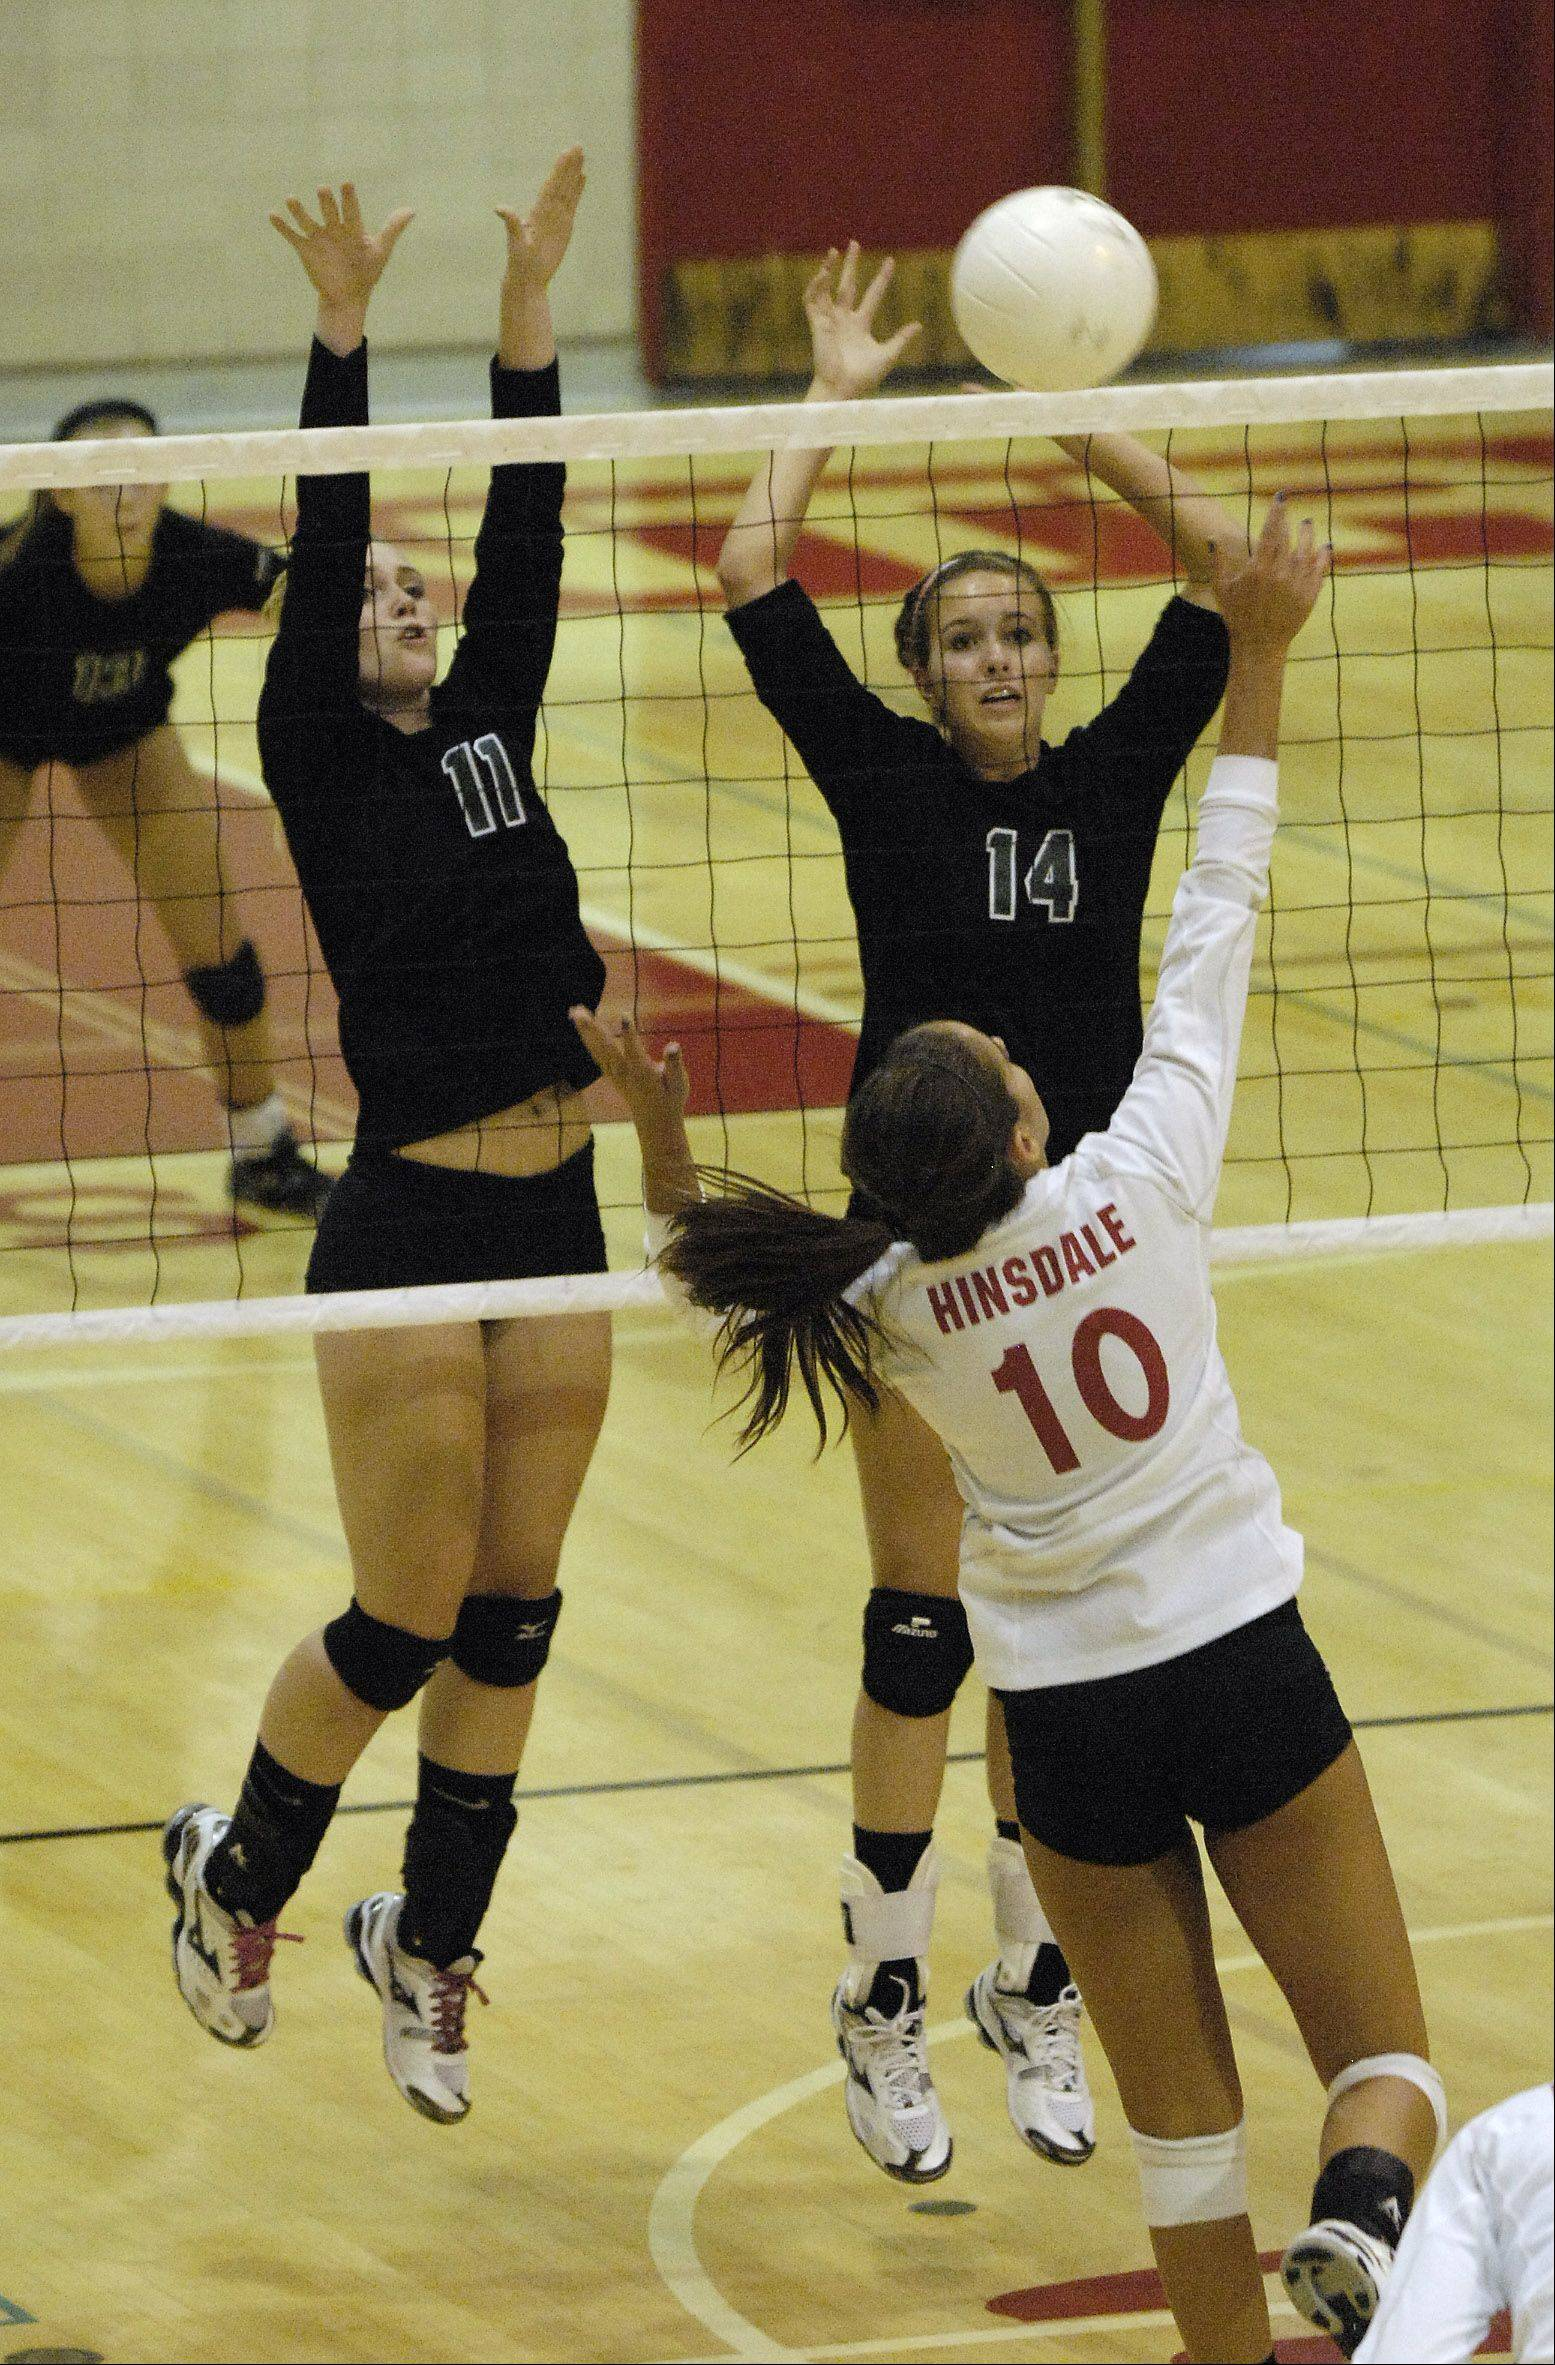 Caleigh Ryan and Katie Ball of Glenbard West look to block a shot by Katie Grabowski of Hinsdale Central during girls varsity volleyball action in Hinsdale.